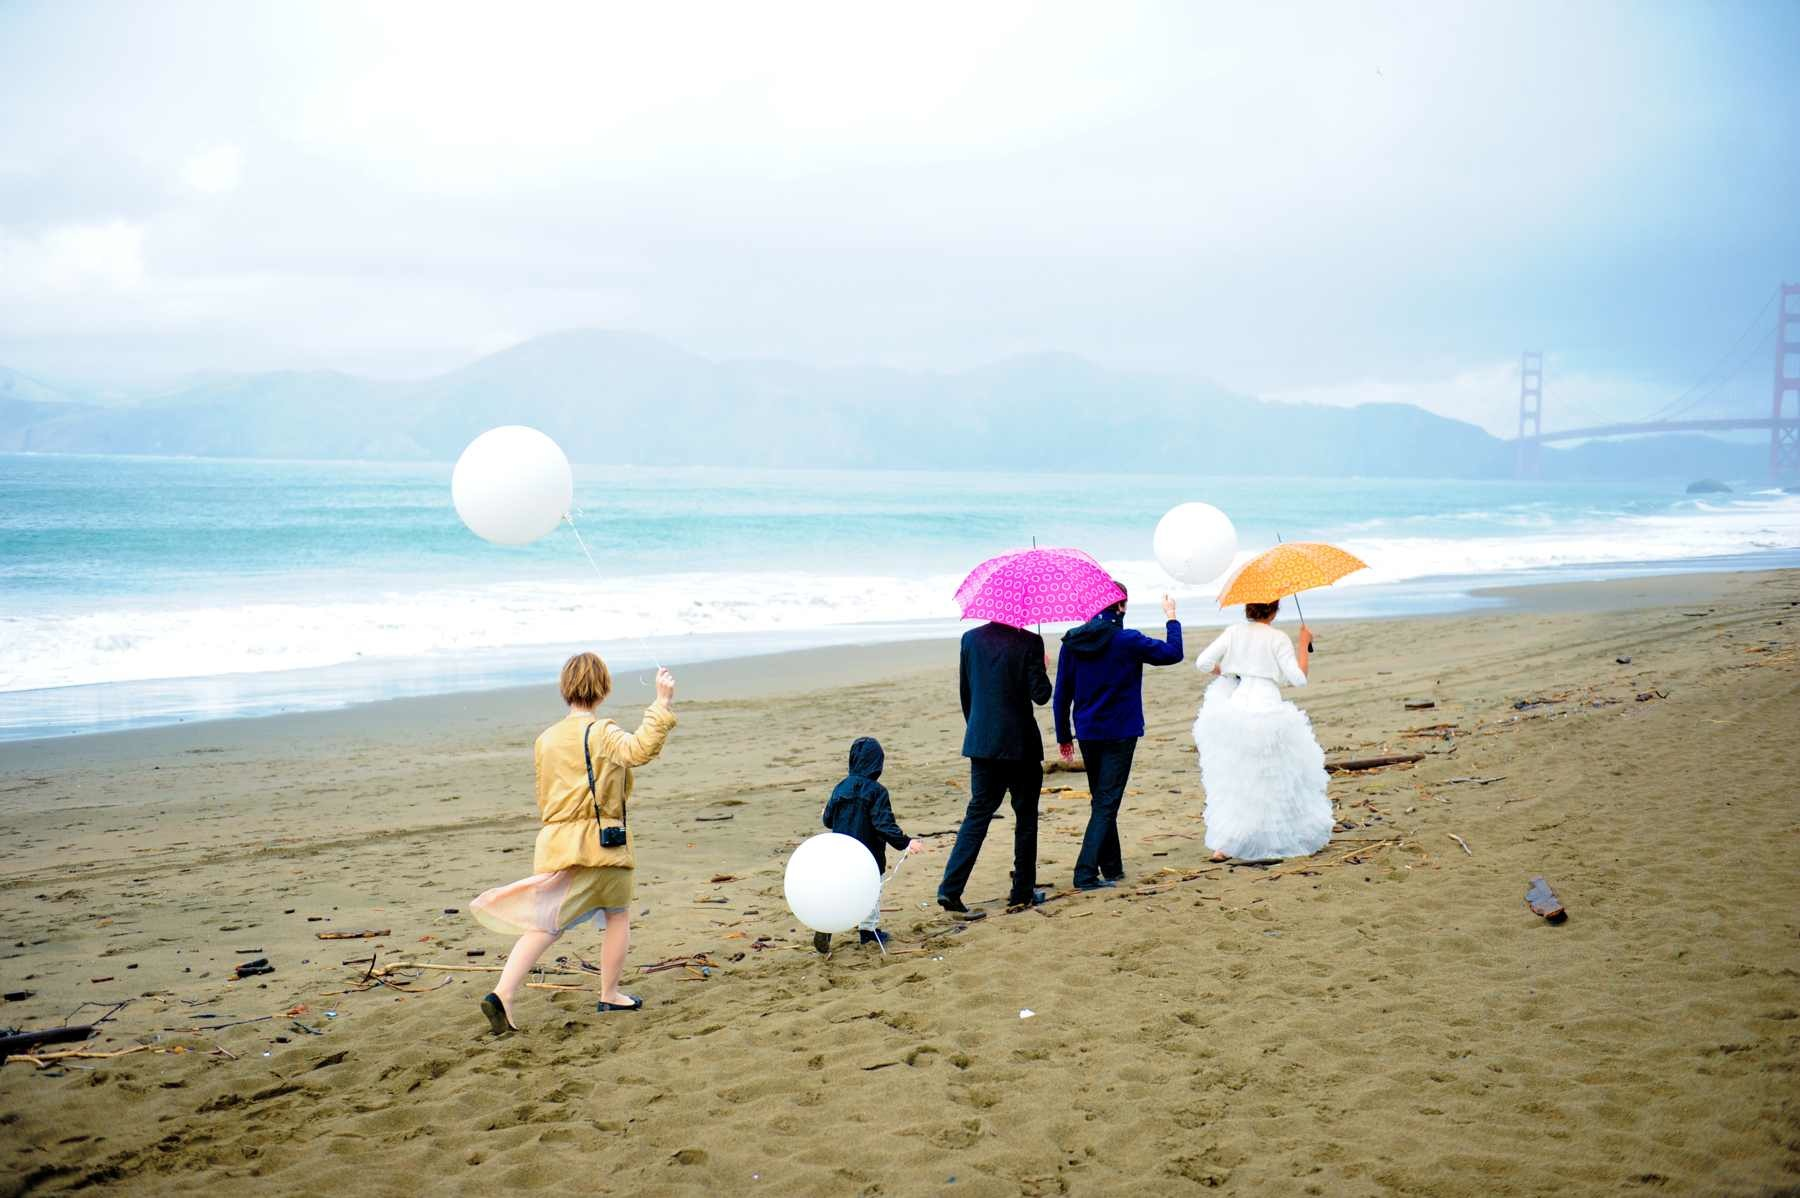 Creative & Fun Bay Area Baker Beach Wedding Photography Images